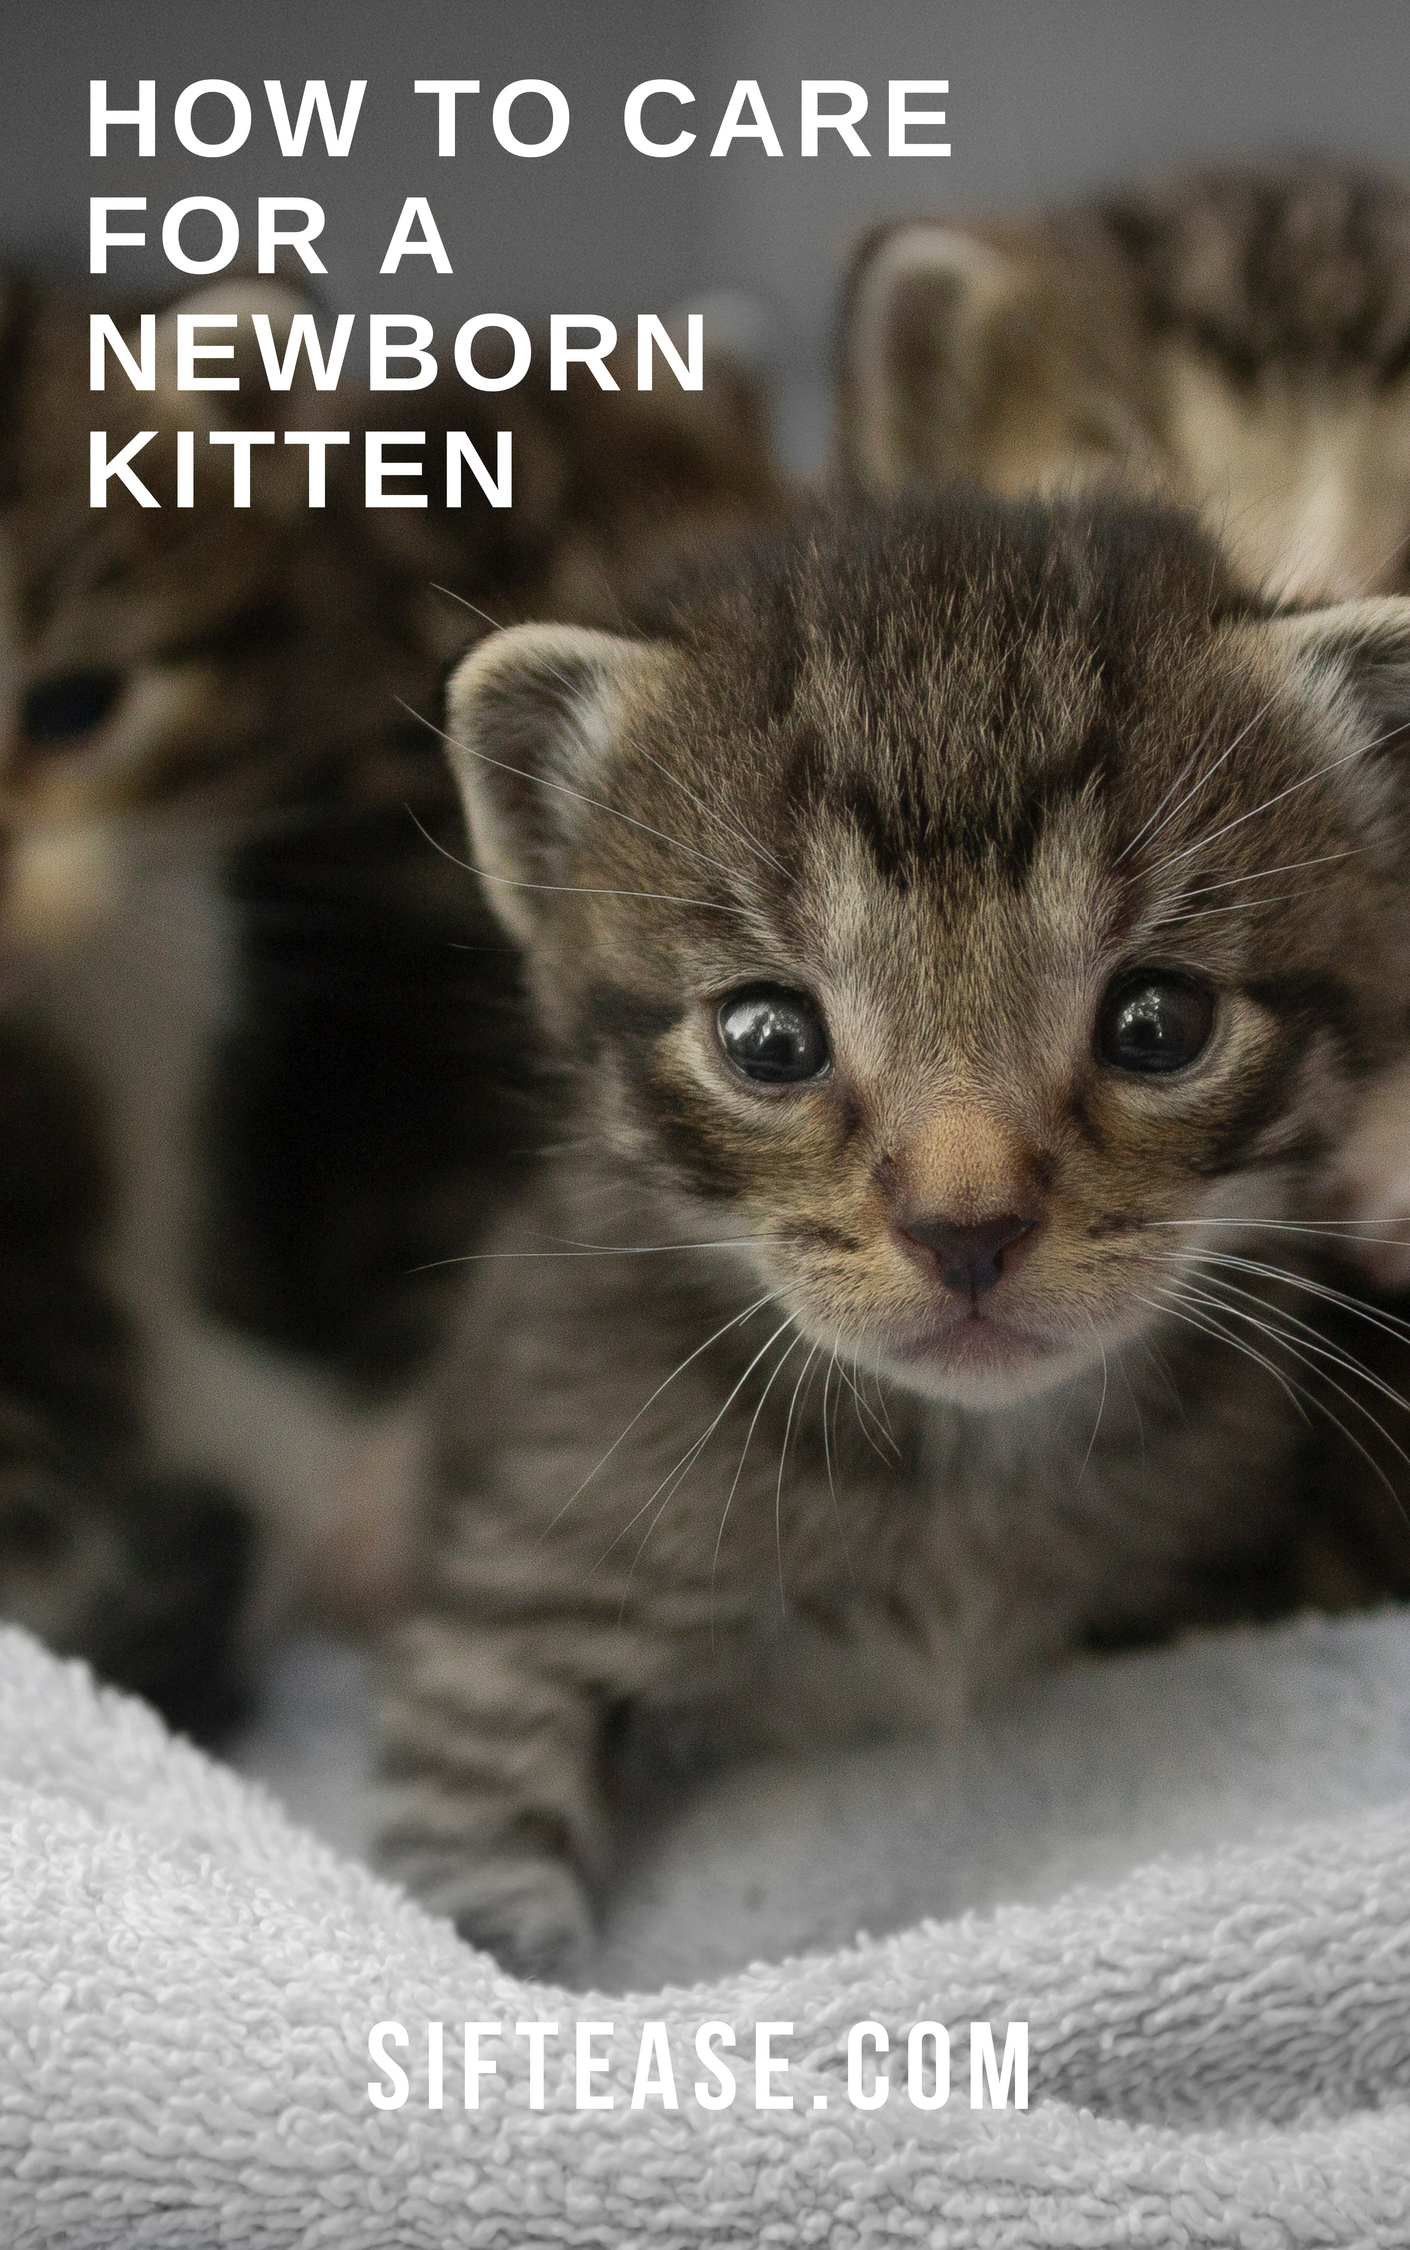 How To Care For A Newborn Kitten Clean Litter Club Newborn Kittens Kitten Season Newborn Care